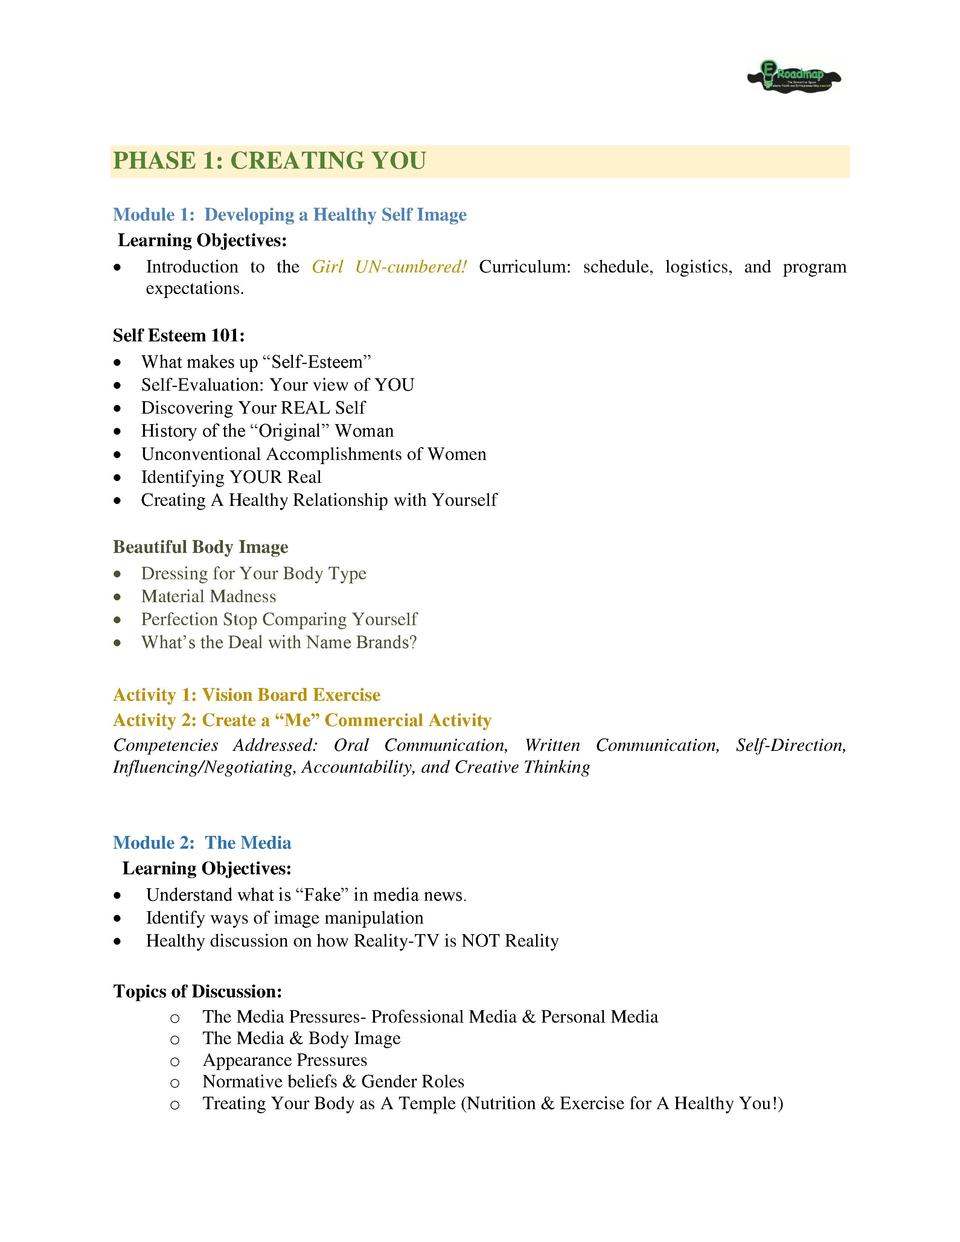 PHASE 1  CREATING YOU Module 1  Developing a Healthy Self Image Learning Objectives      Introduction to the Girl UN-cumbe...